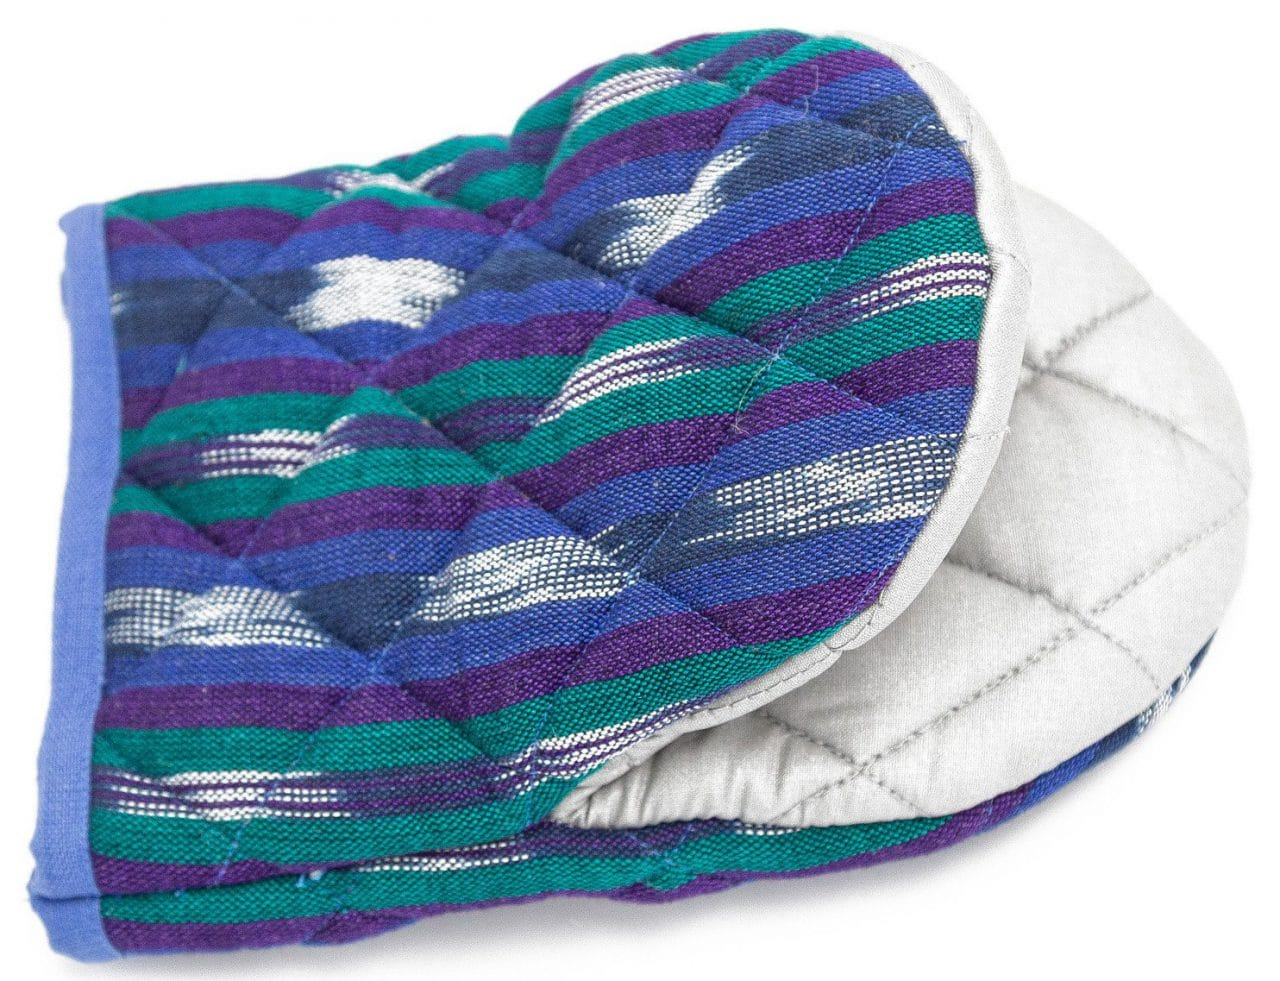 Oven Mitt - Blue with Green